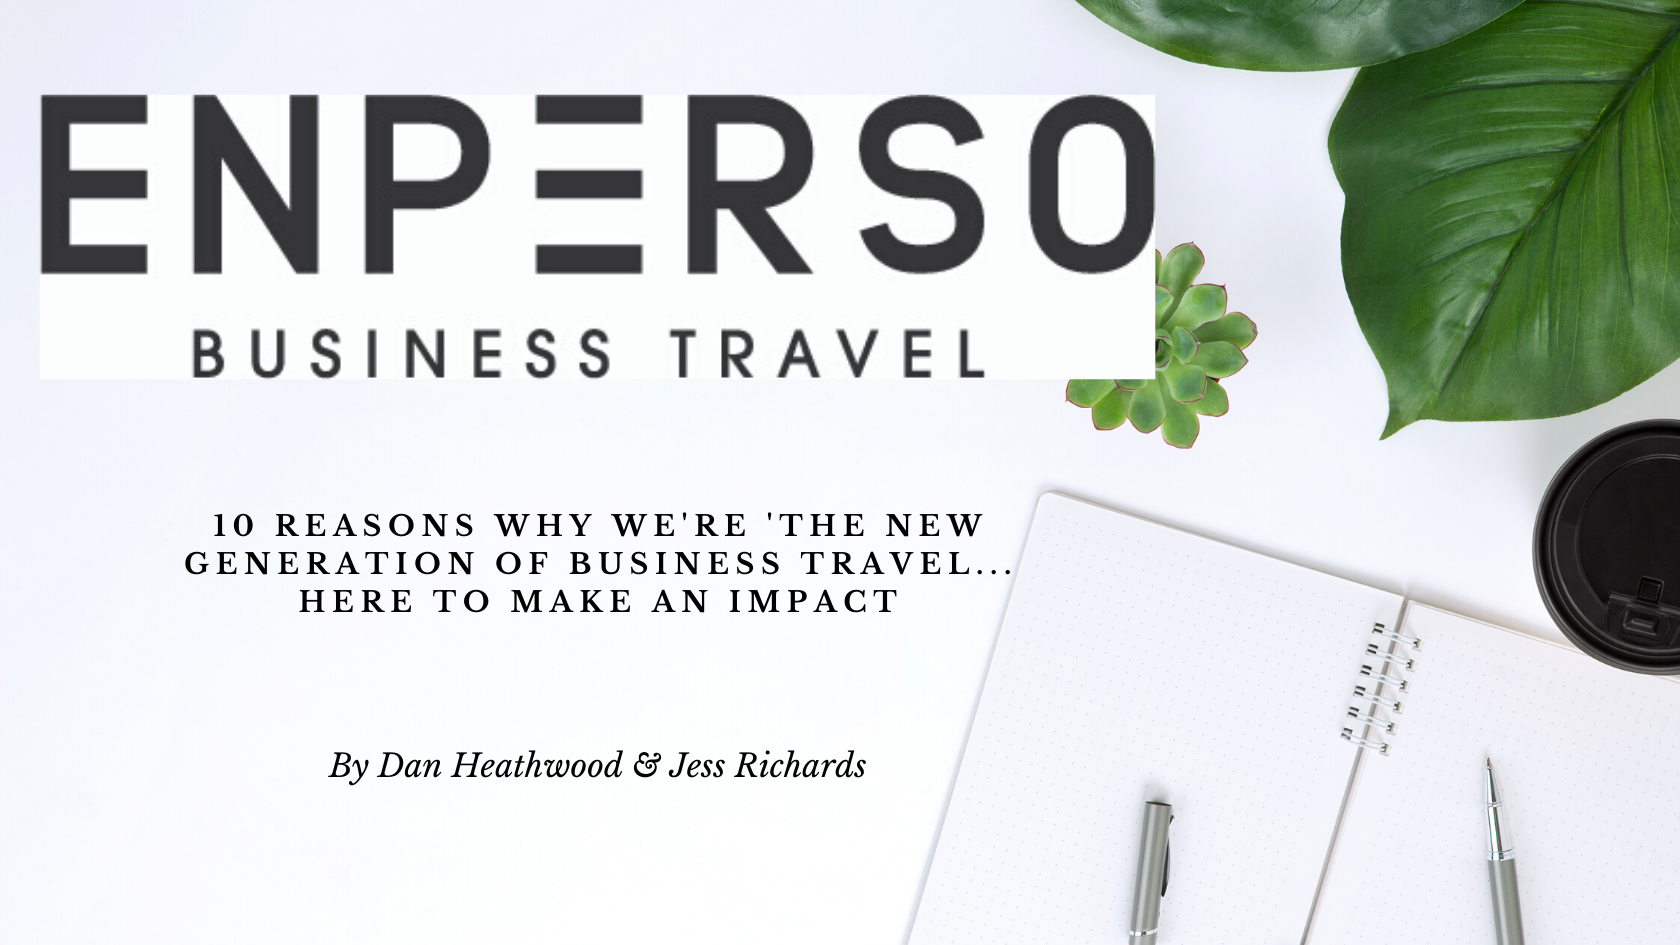 The New Generation of Business Travel